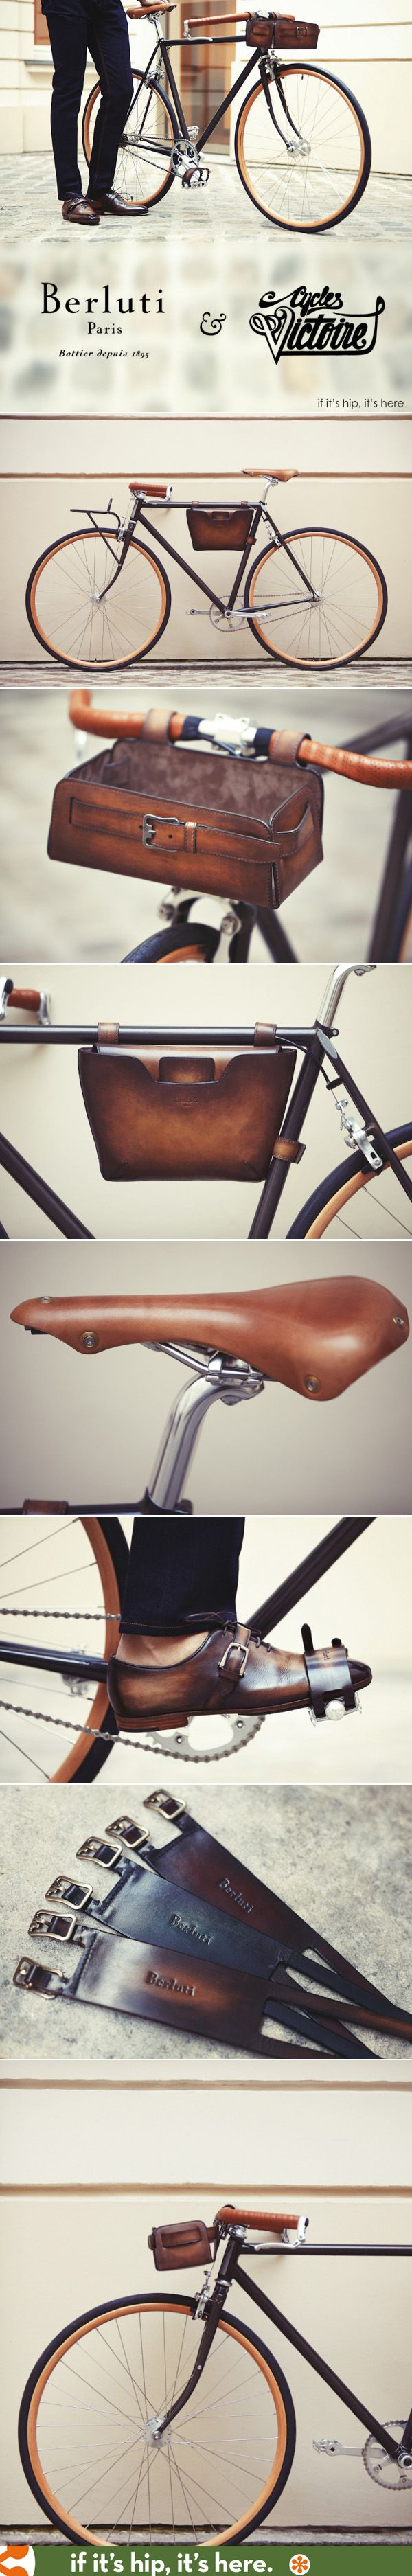 Berluti and Victoire Cycles team up to create a stunning men's bike with leather accessories.